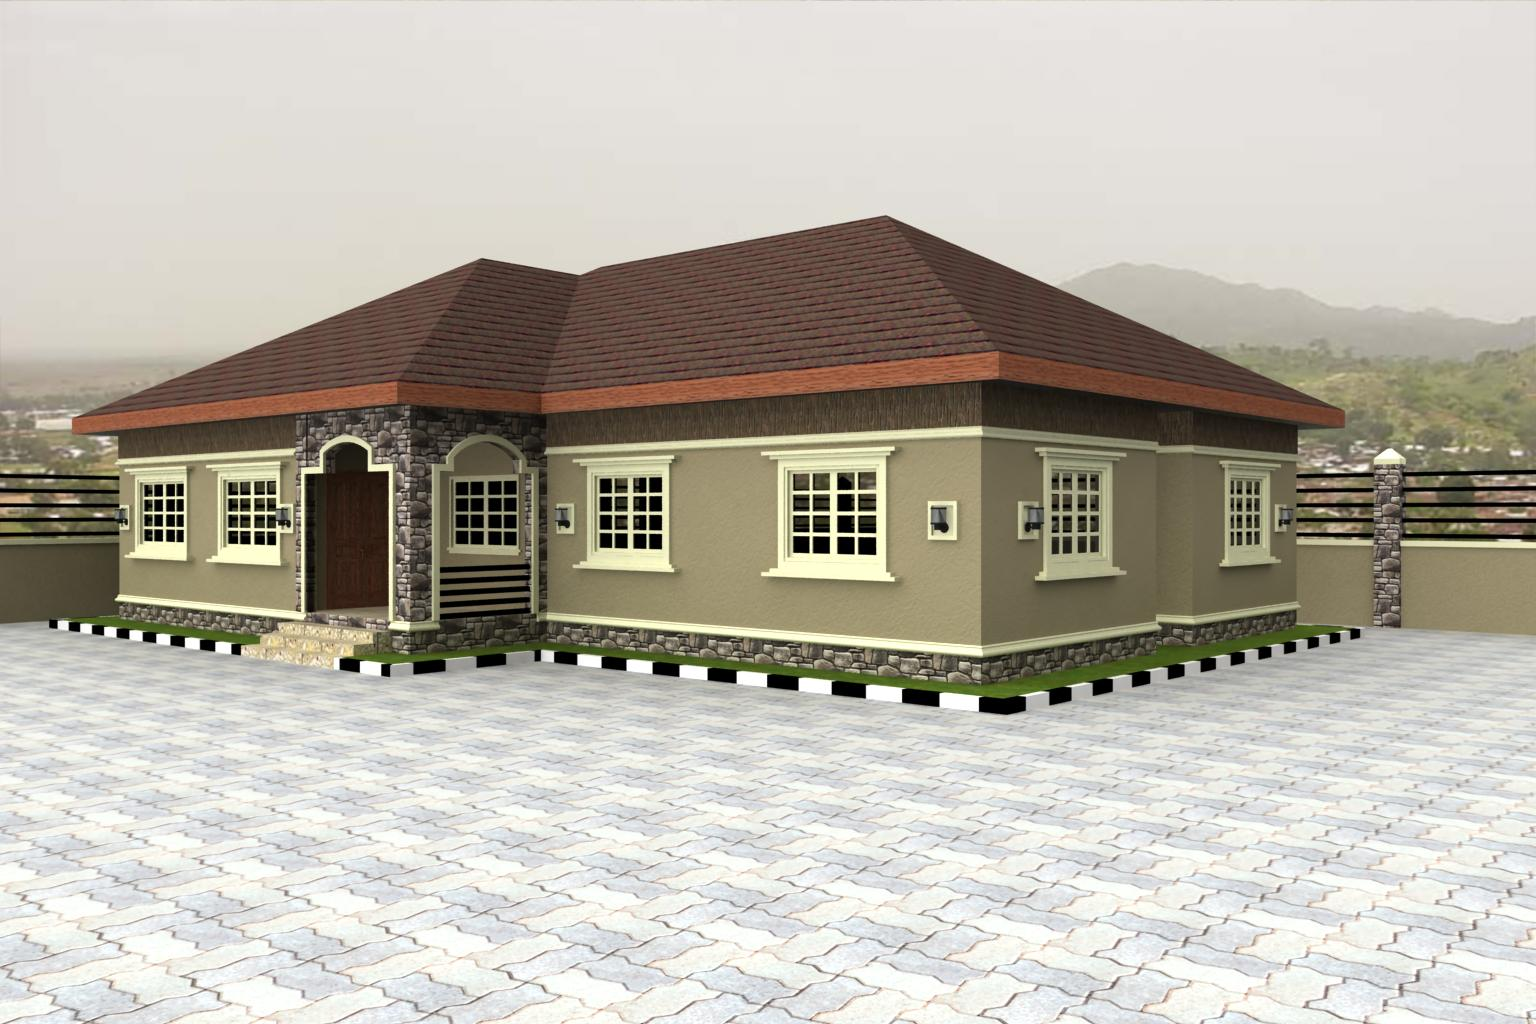 Home plans for bungalows in nigeria properties 4 for House plans nigeria